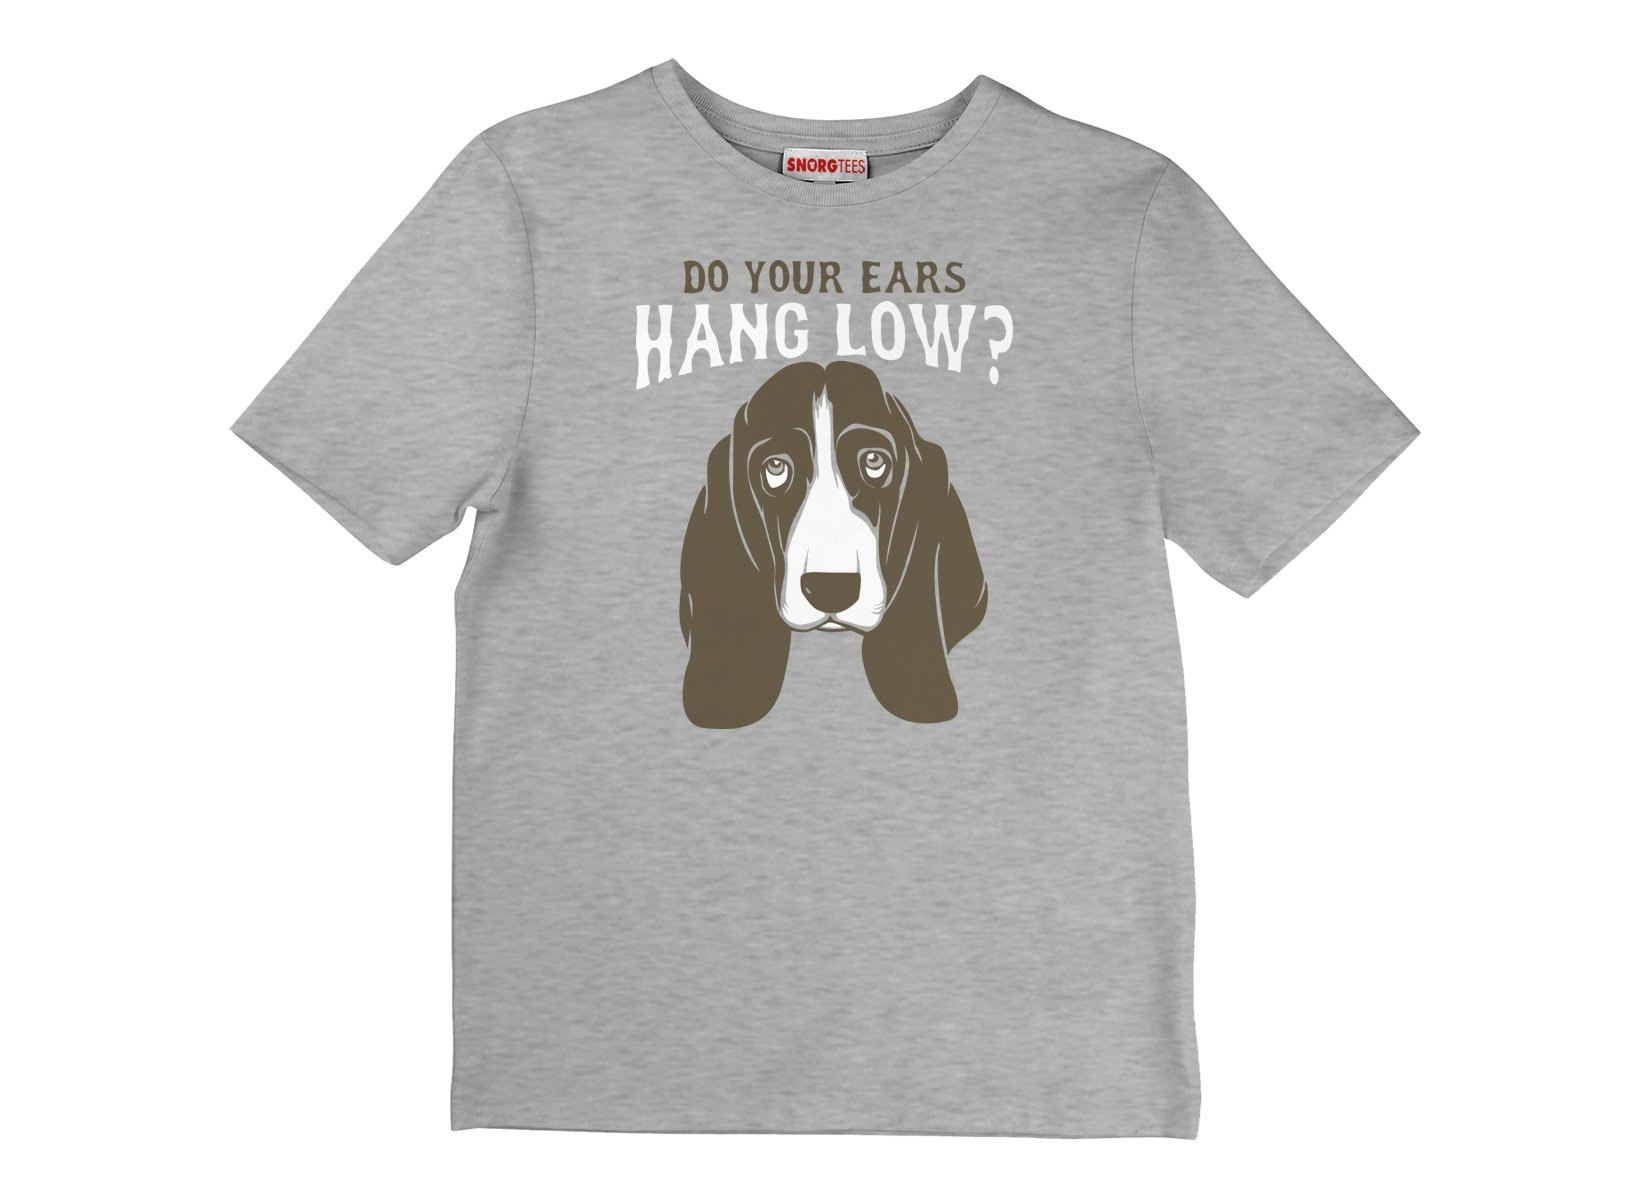 Do Your Ears Hang Low? on Kids T-Shirt